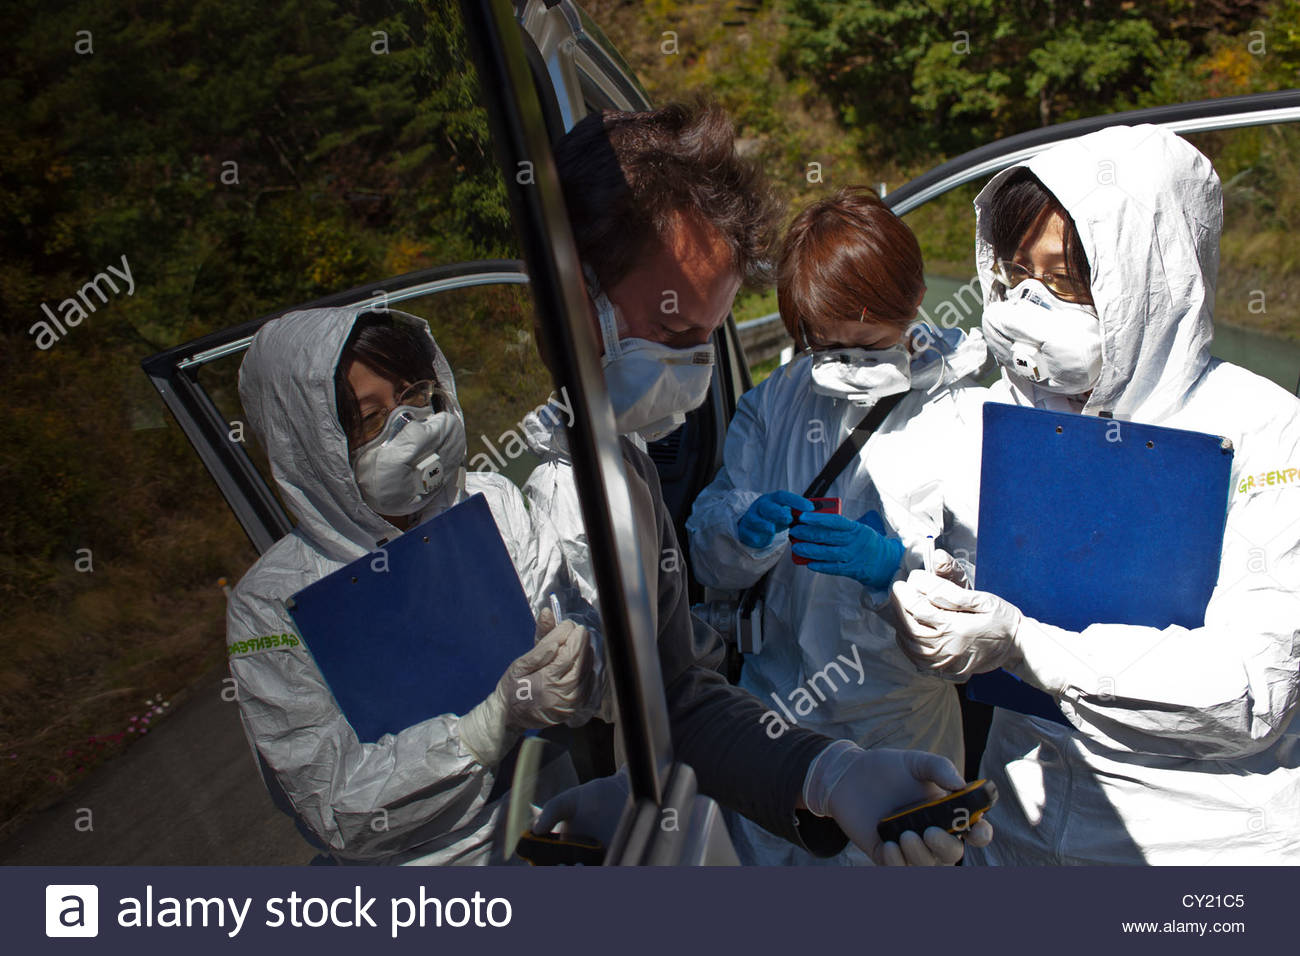 A Greenpeace radiation monitoring team checks contamination levels in Iitate. - Stock Image